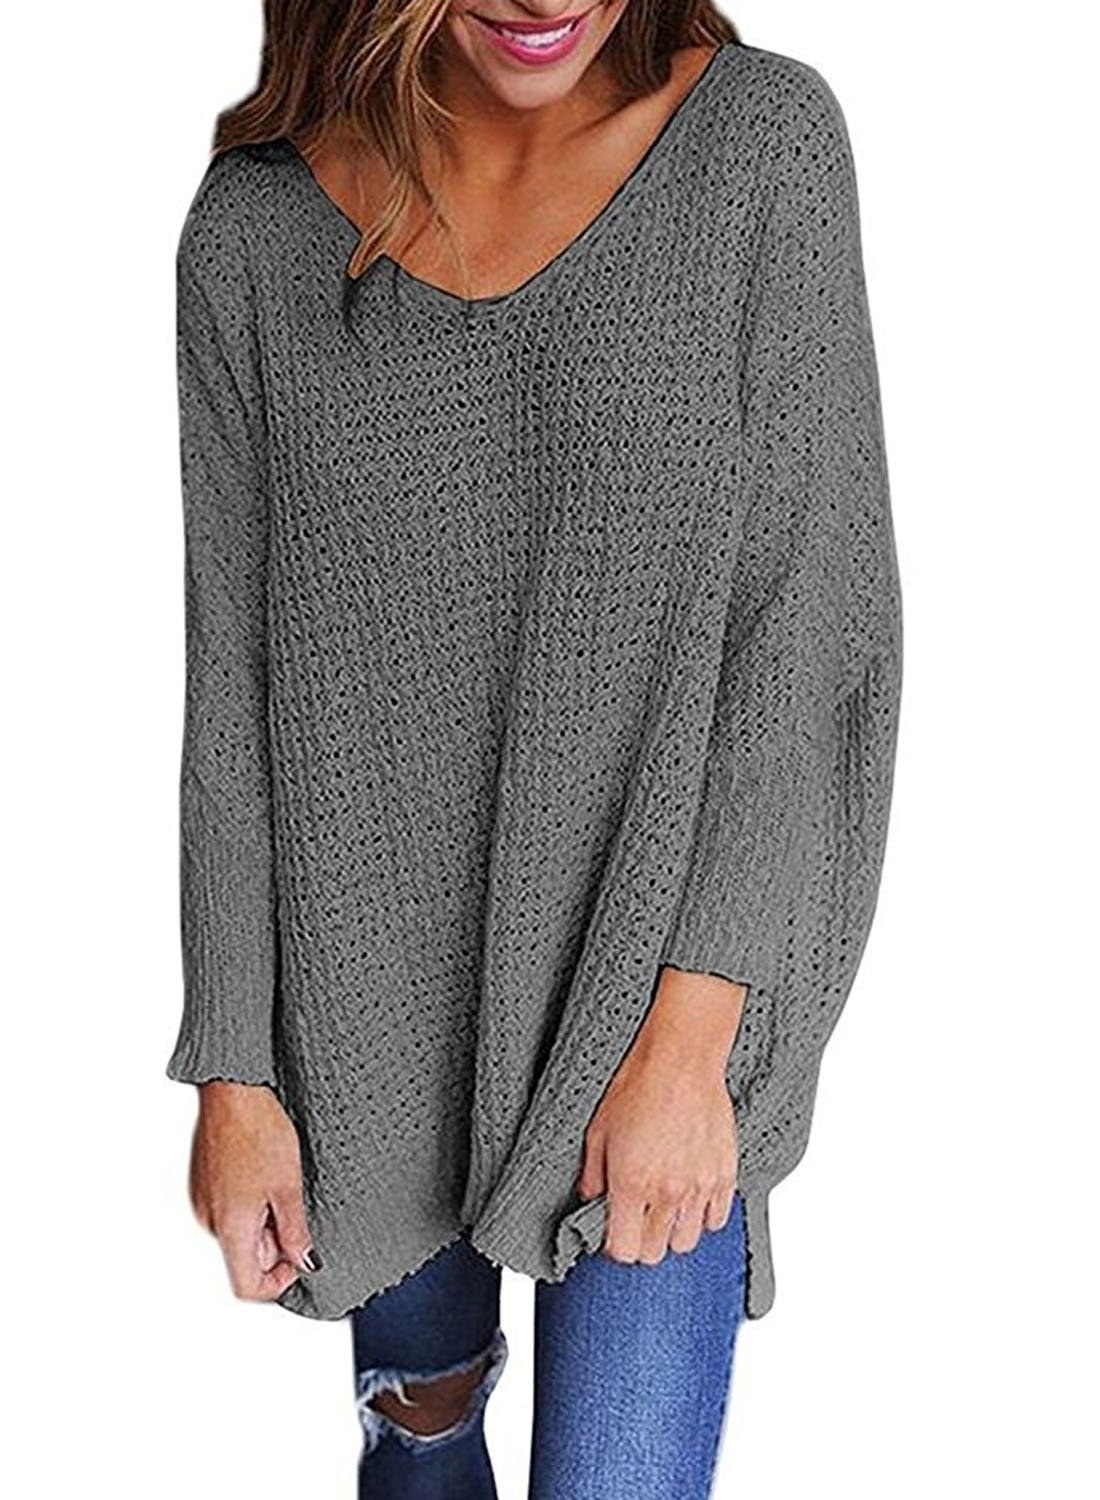 Dearlove Women's Long Sleeve Oversized Sweaters V Neck Loose Knit Pullover Tops Casual Jumper Shirts Solid Grey Small